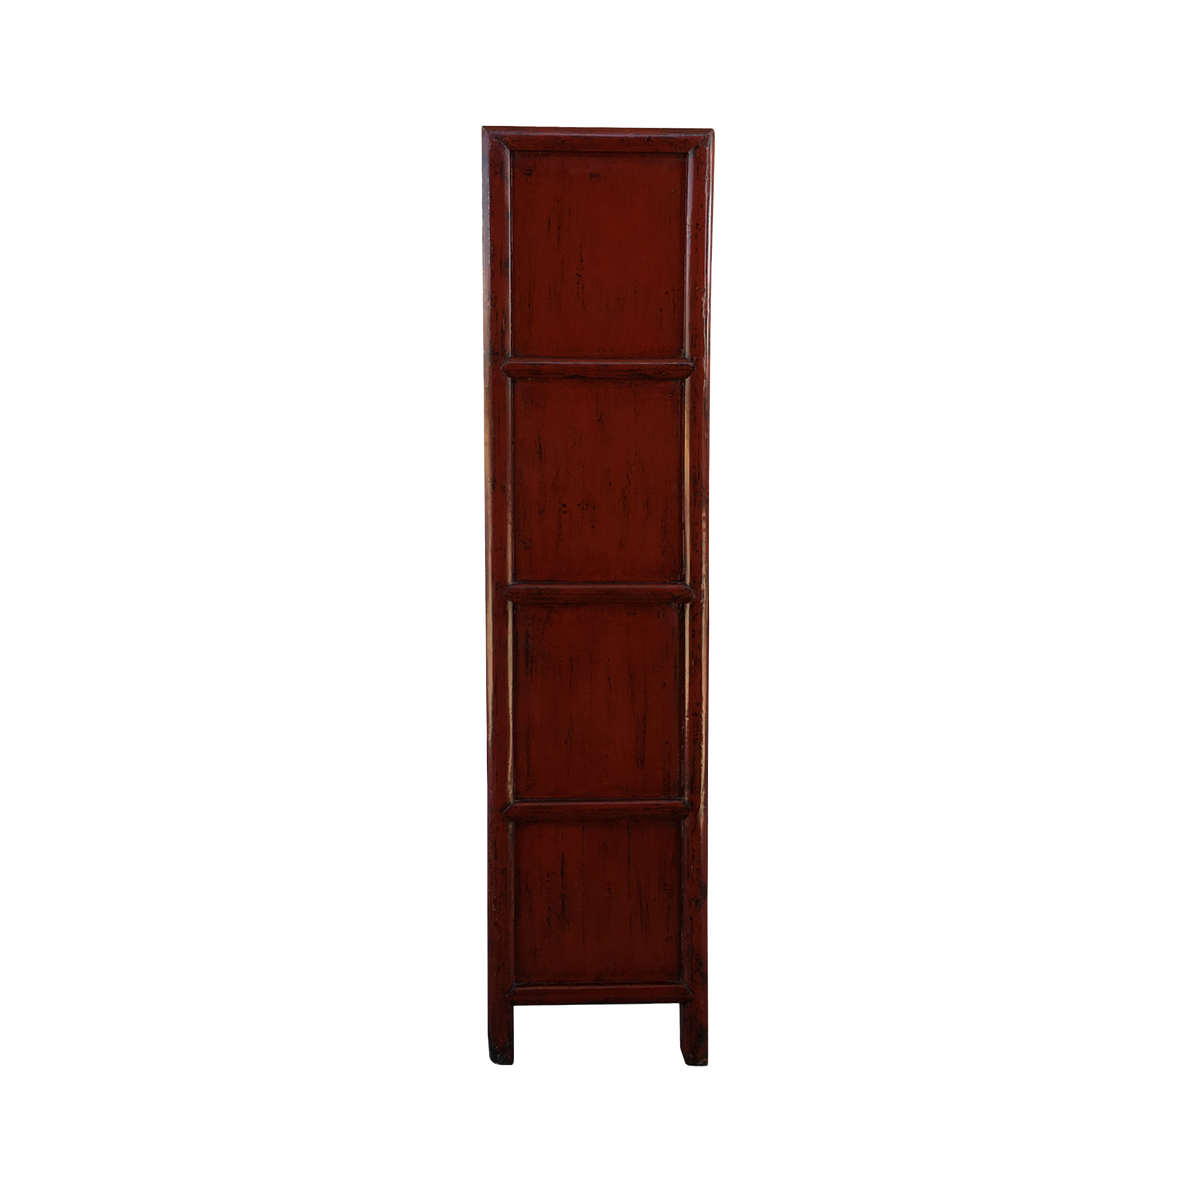 Pair of Red Lacquer Bookcases